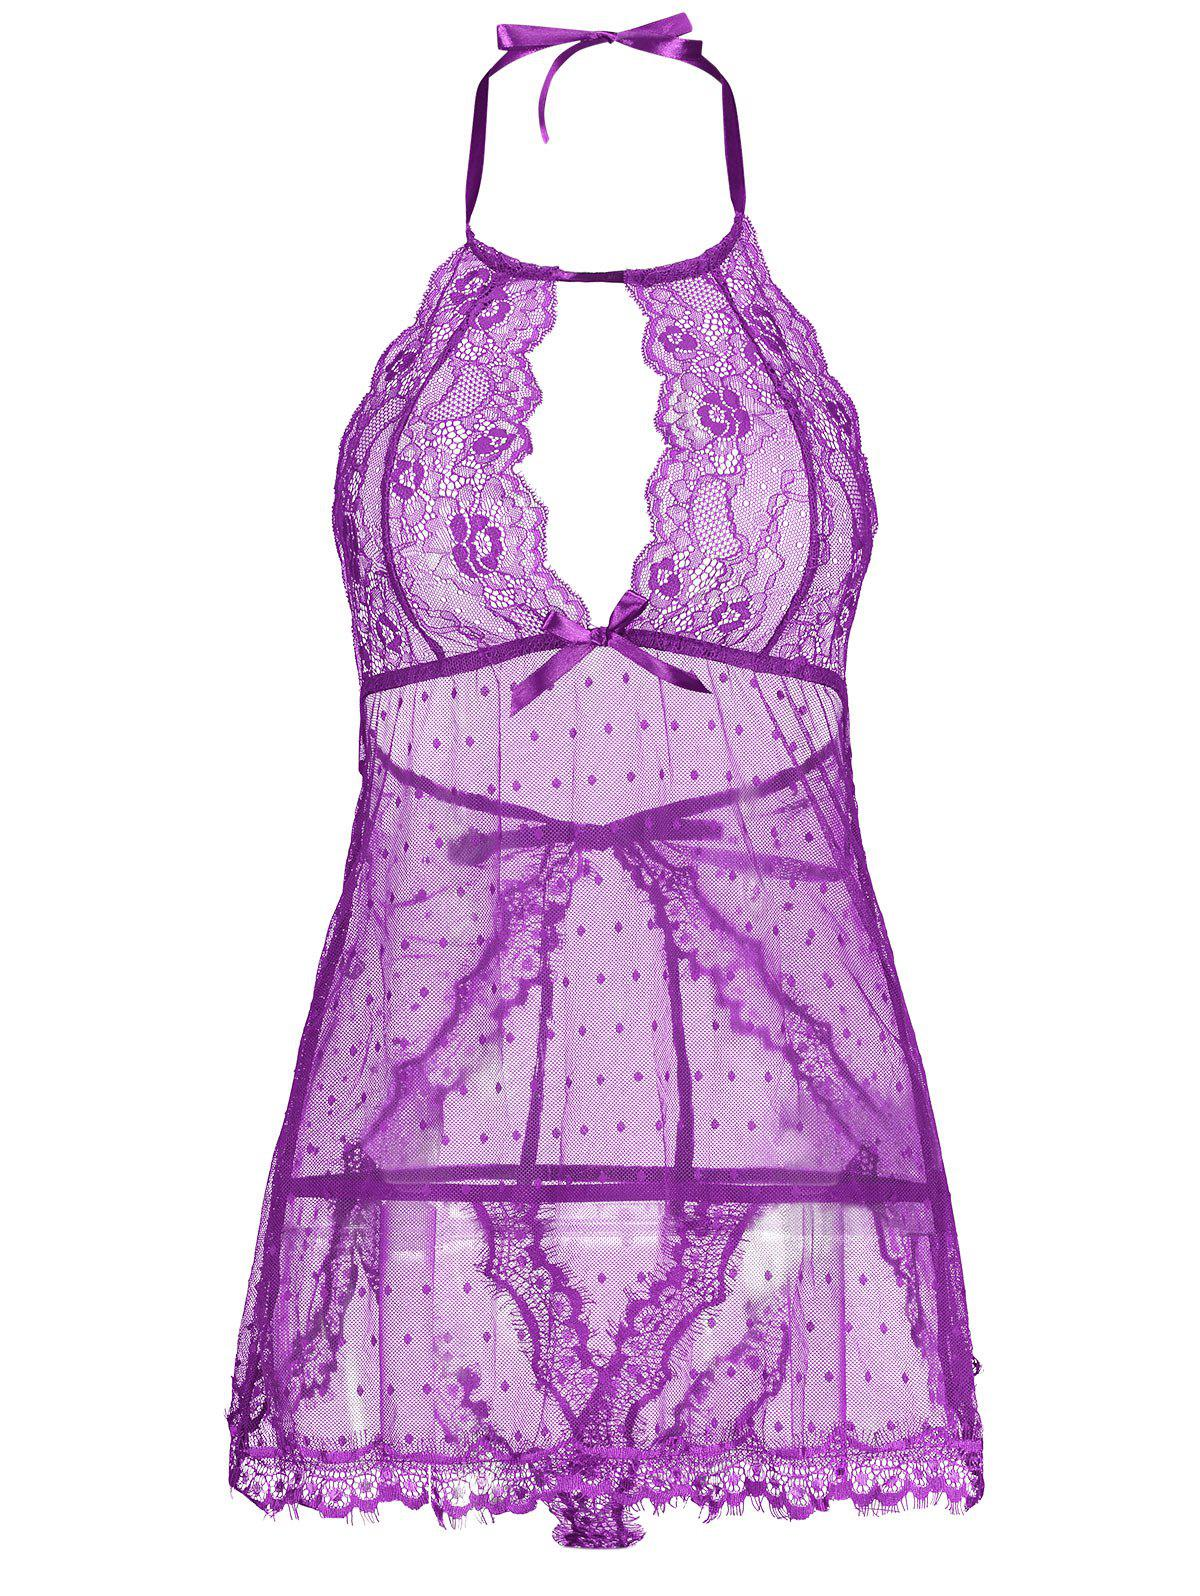 Lingerie Lace Back Split Sheer Dress - PURPLE L